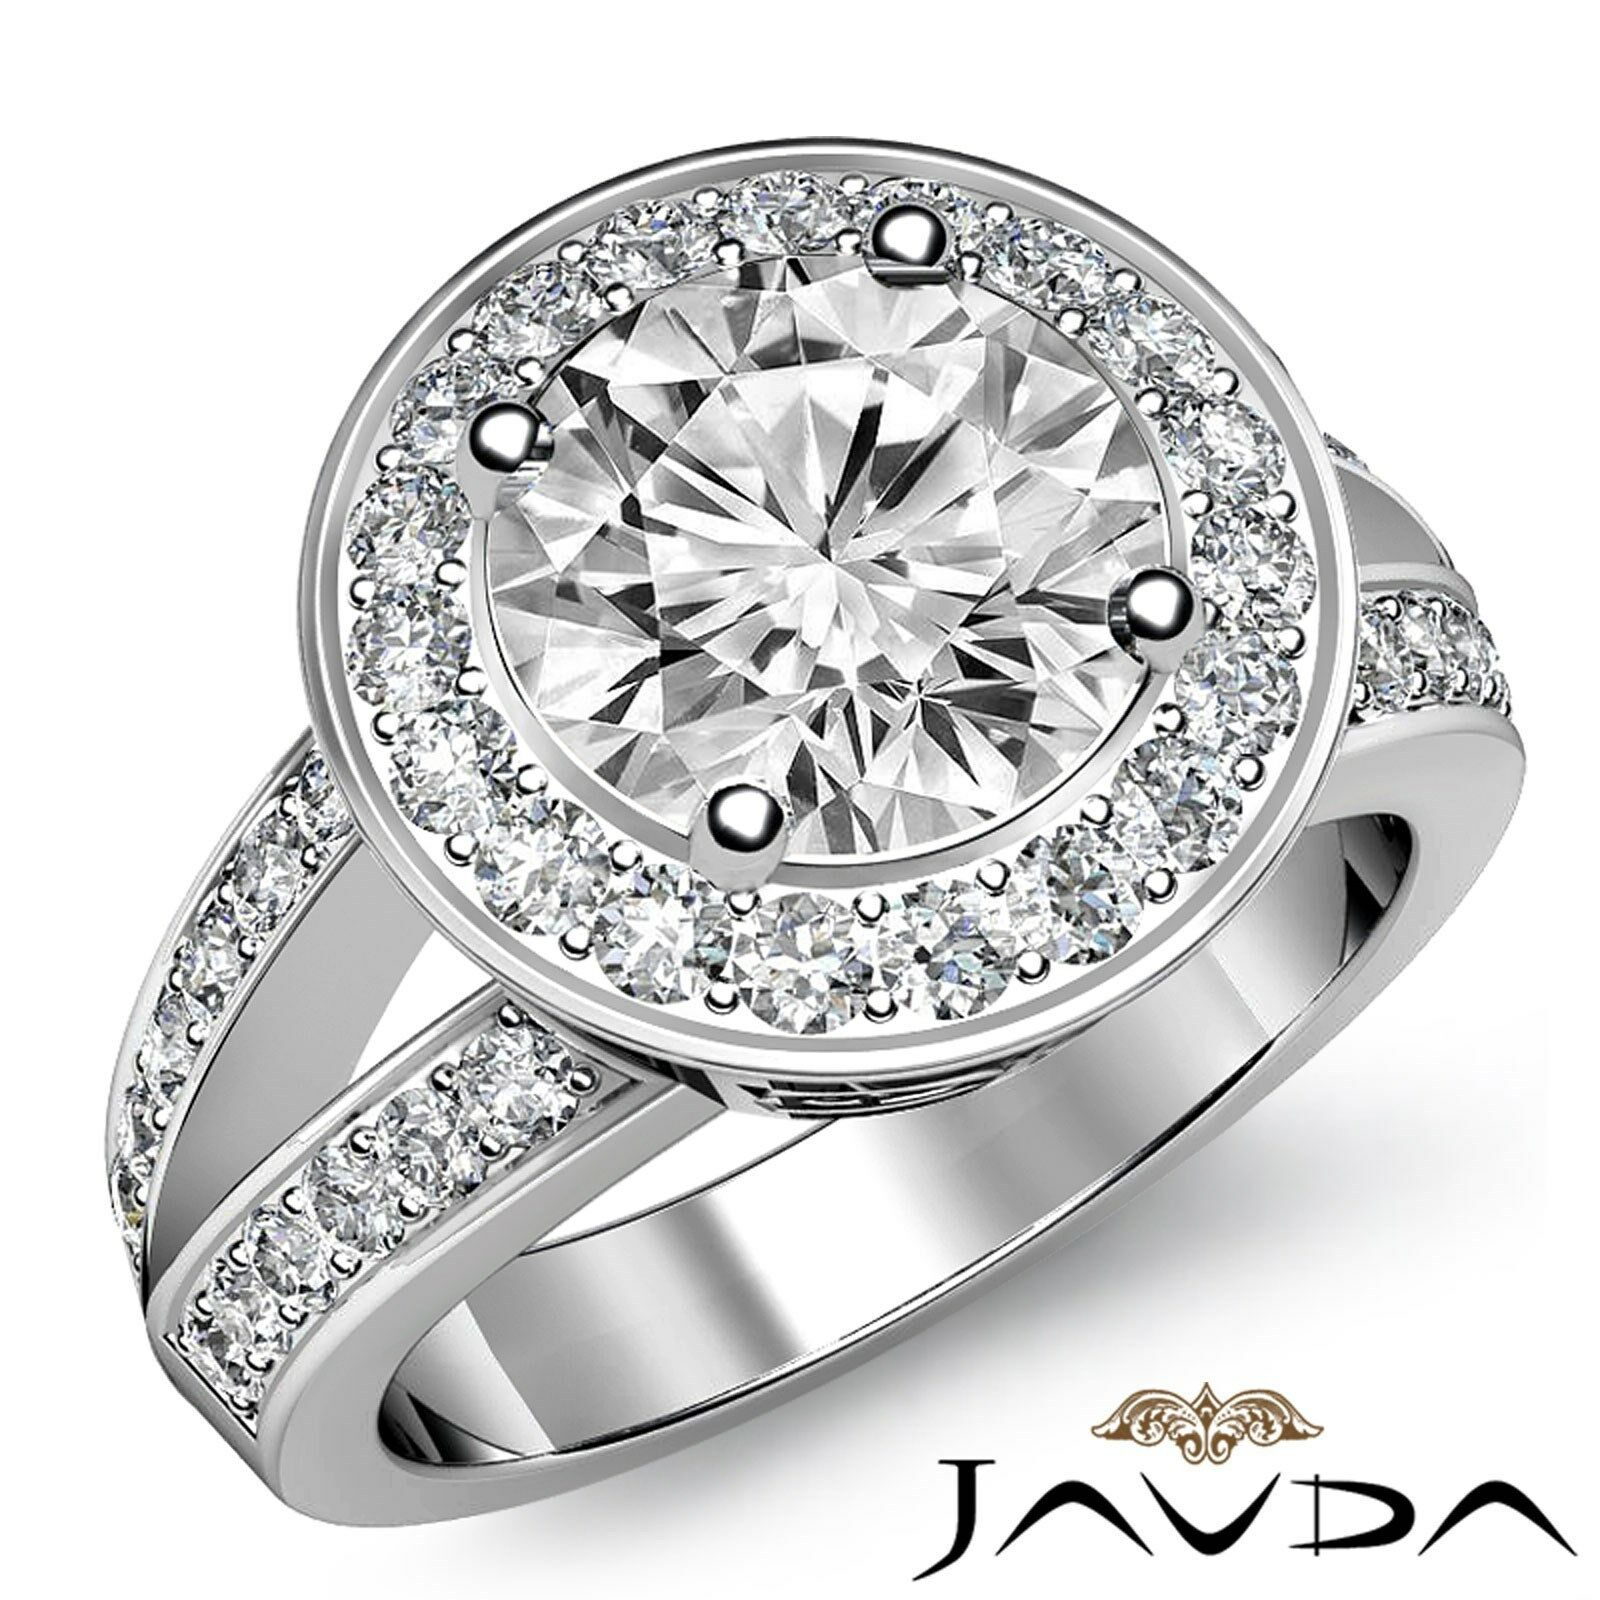 Filigree Split Shank Halo Round Diamond Engagement Pave Ring GIA H VS2 2.17 Ct